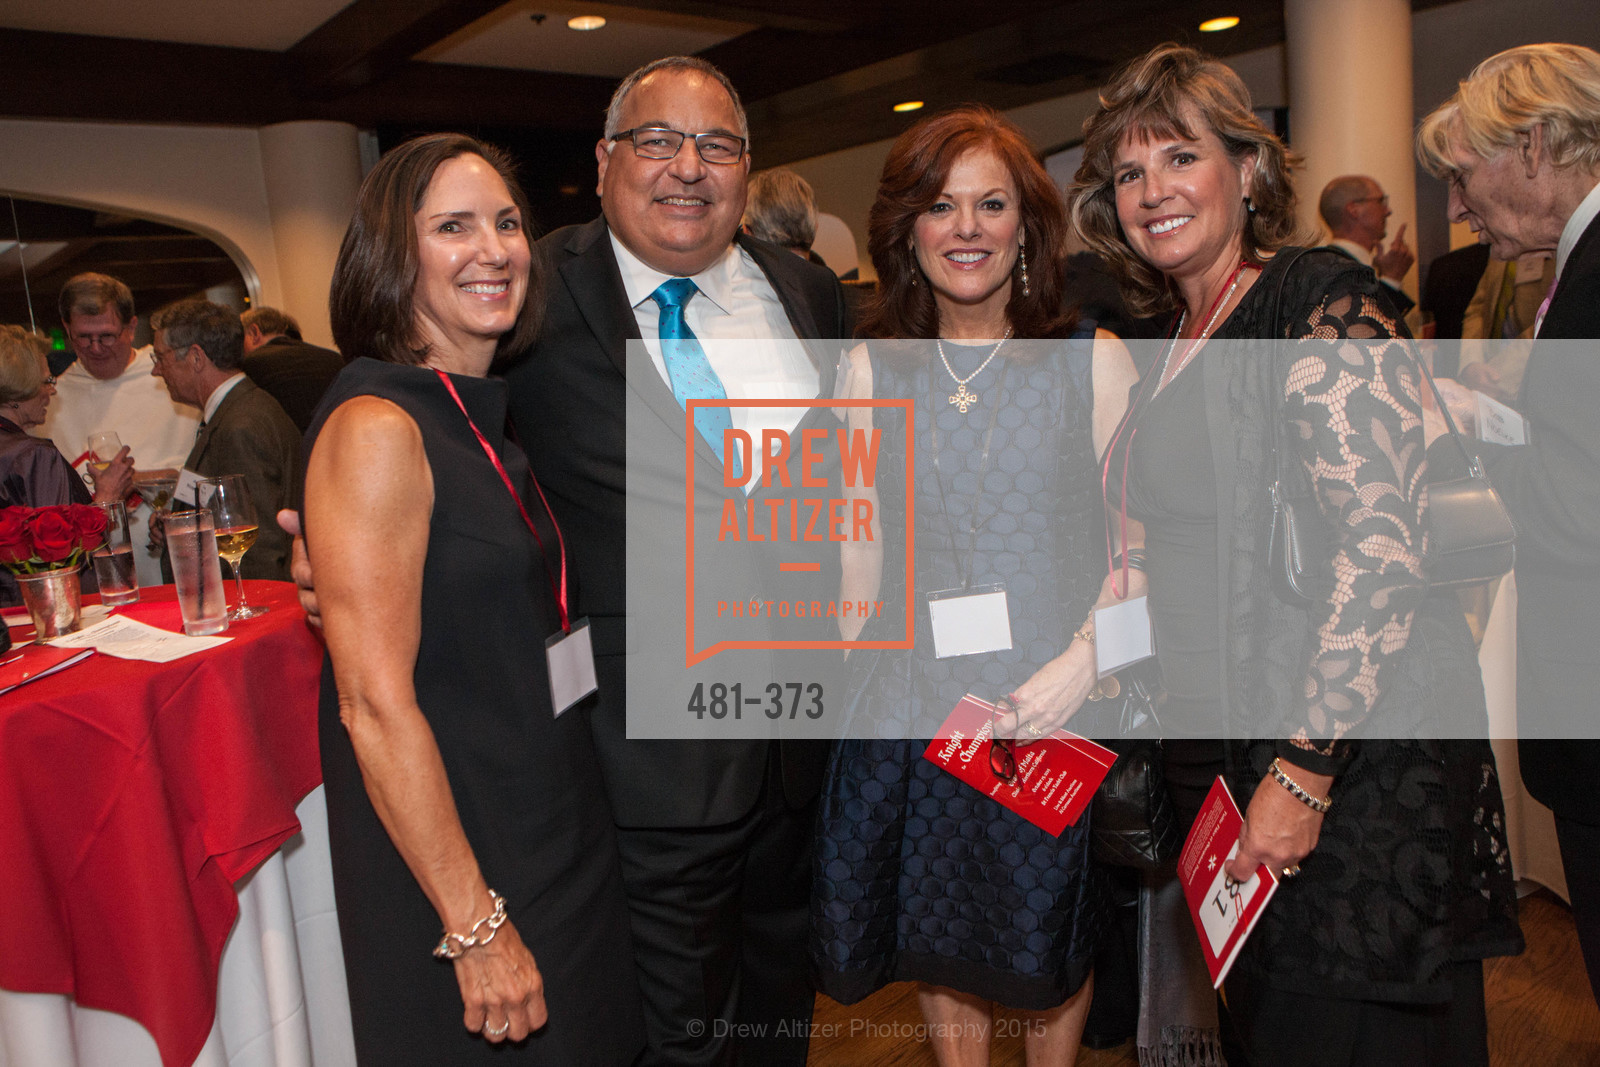 Janice Meisel, Tony Sanchez-Corea, Theresa Spirz, Diane Linehan, Sovereign Order of Malta Presents: A Knight for Champions, 7th Annual Silver Chalice Awards Dinner, St. Francis Yacht Club. 99 Yacht Rd, October 13th, 2015,Drew Altizer, Drew Altizer Photography, full-service agency, private events, San Francisco photographer, photographer california